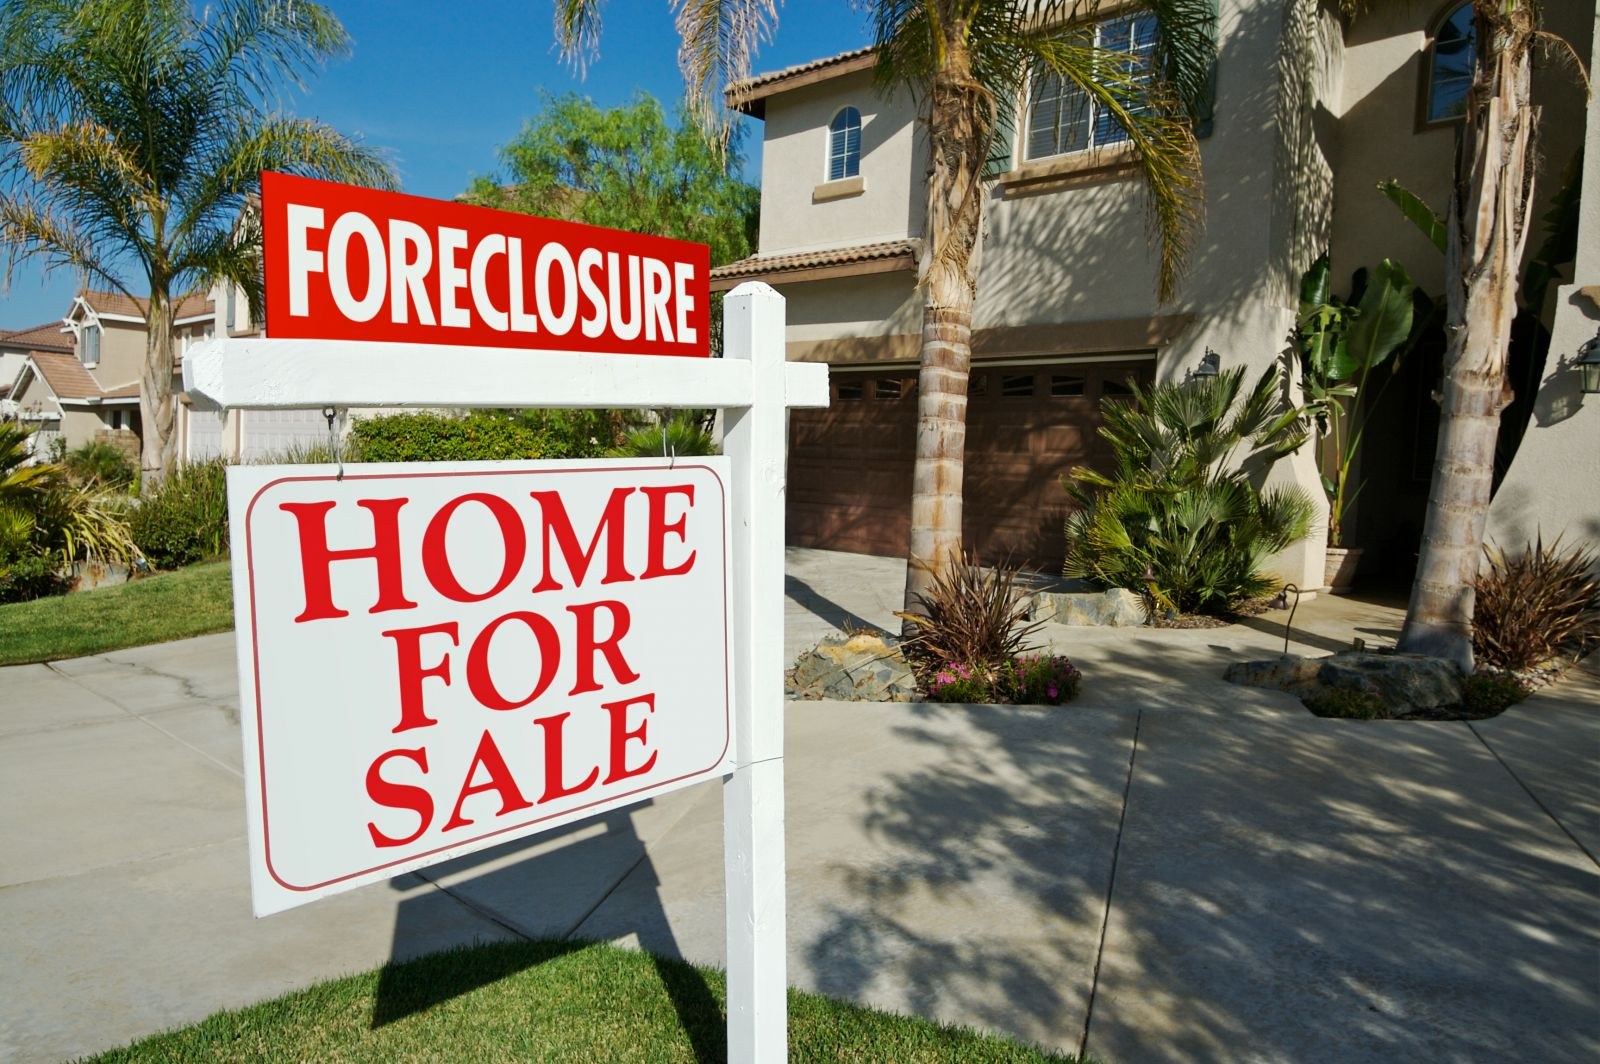 There were nearly 20,000 foreclosure filings in South Carolina in 2016, an 8% decrease from 2015 and more than 40% fewer than the peak in foreclosures in 2010. (Photo/File)